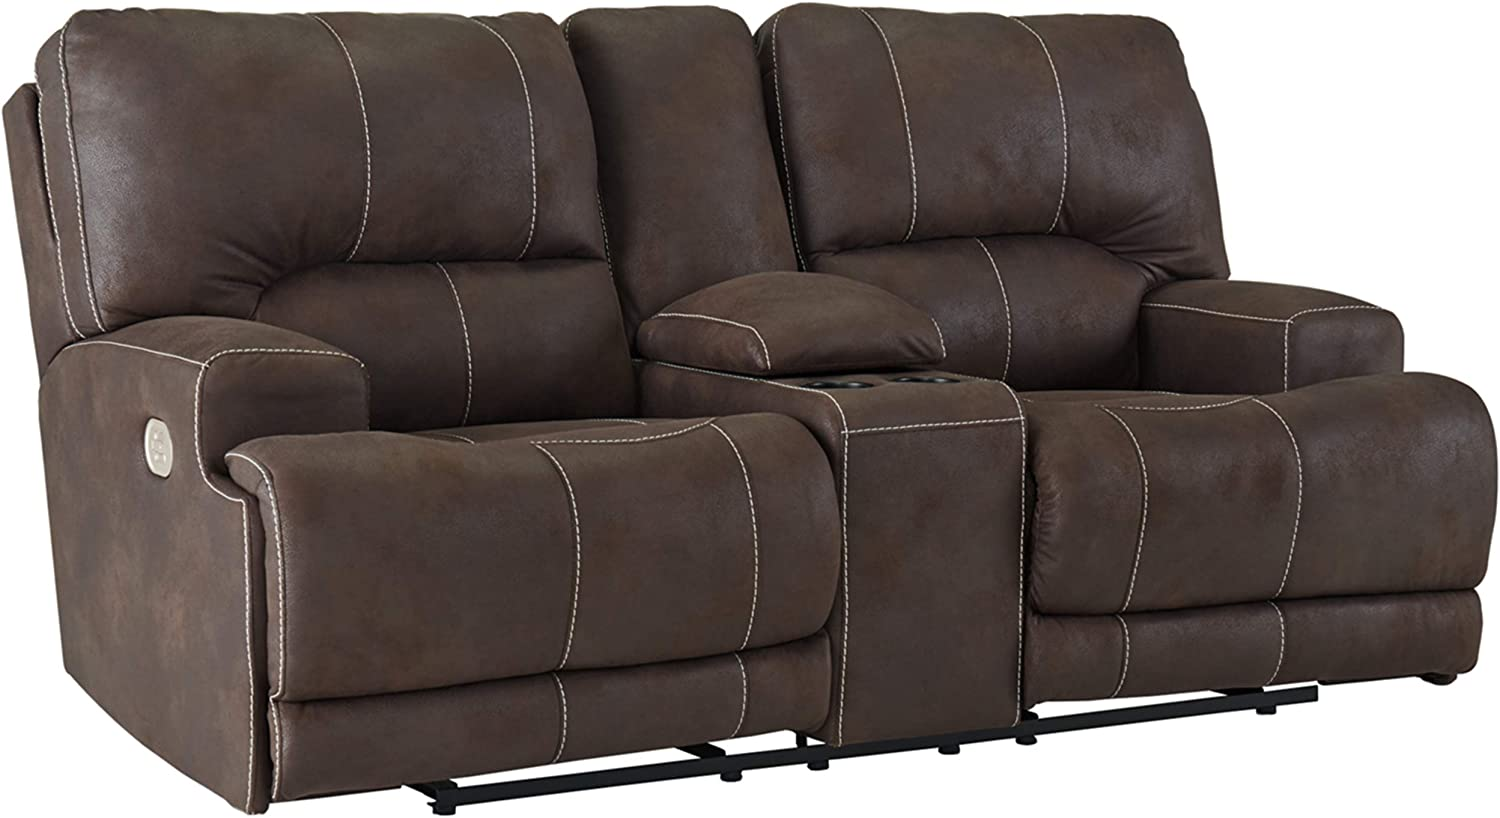 Signature Design by Ashley - Kitching Faux Leather Power Reclining Loveseat with Console, Dark Brown